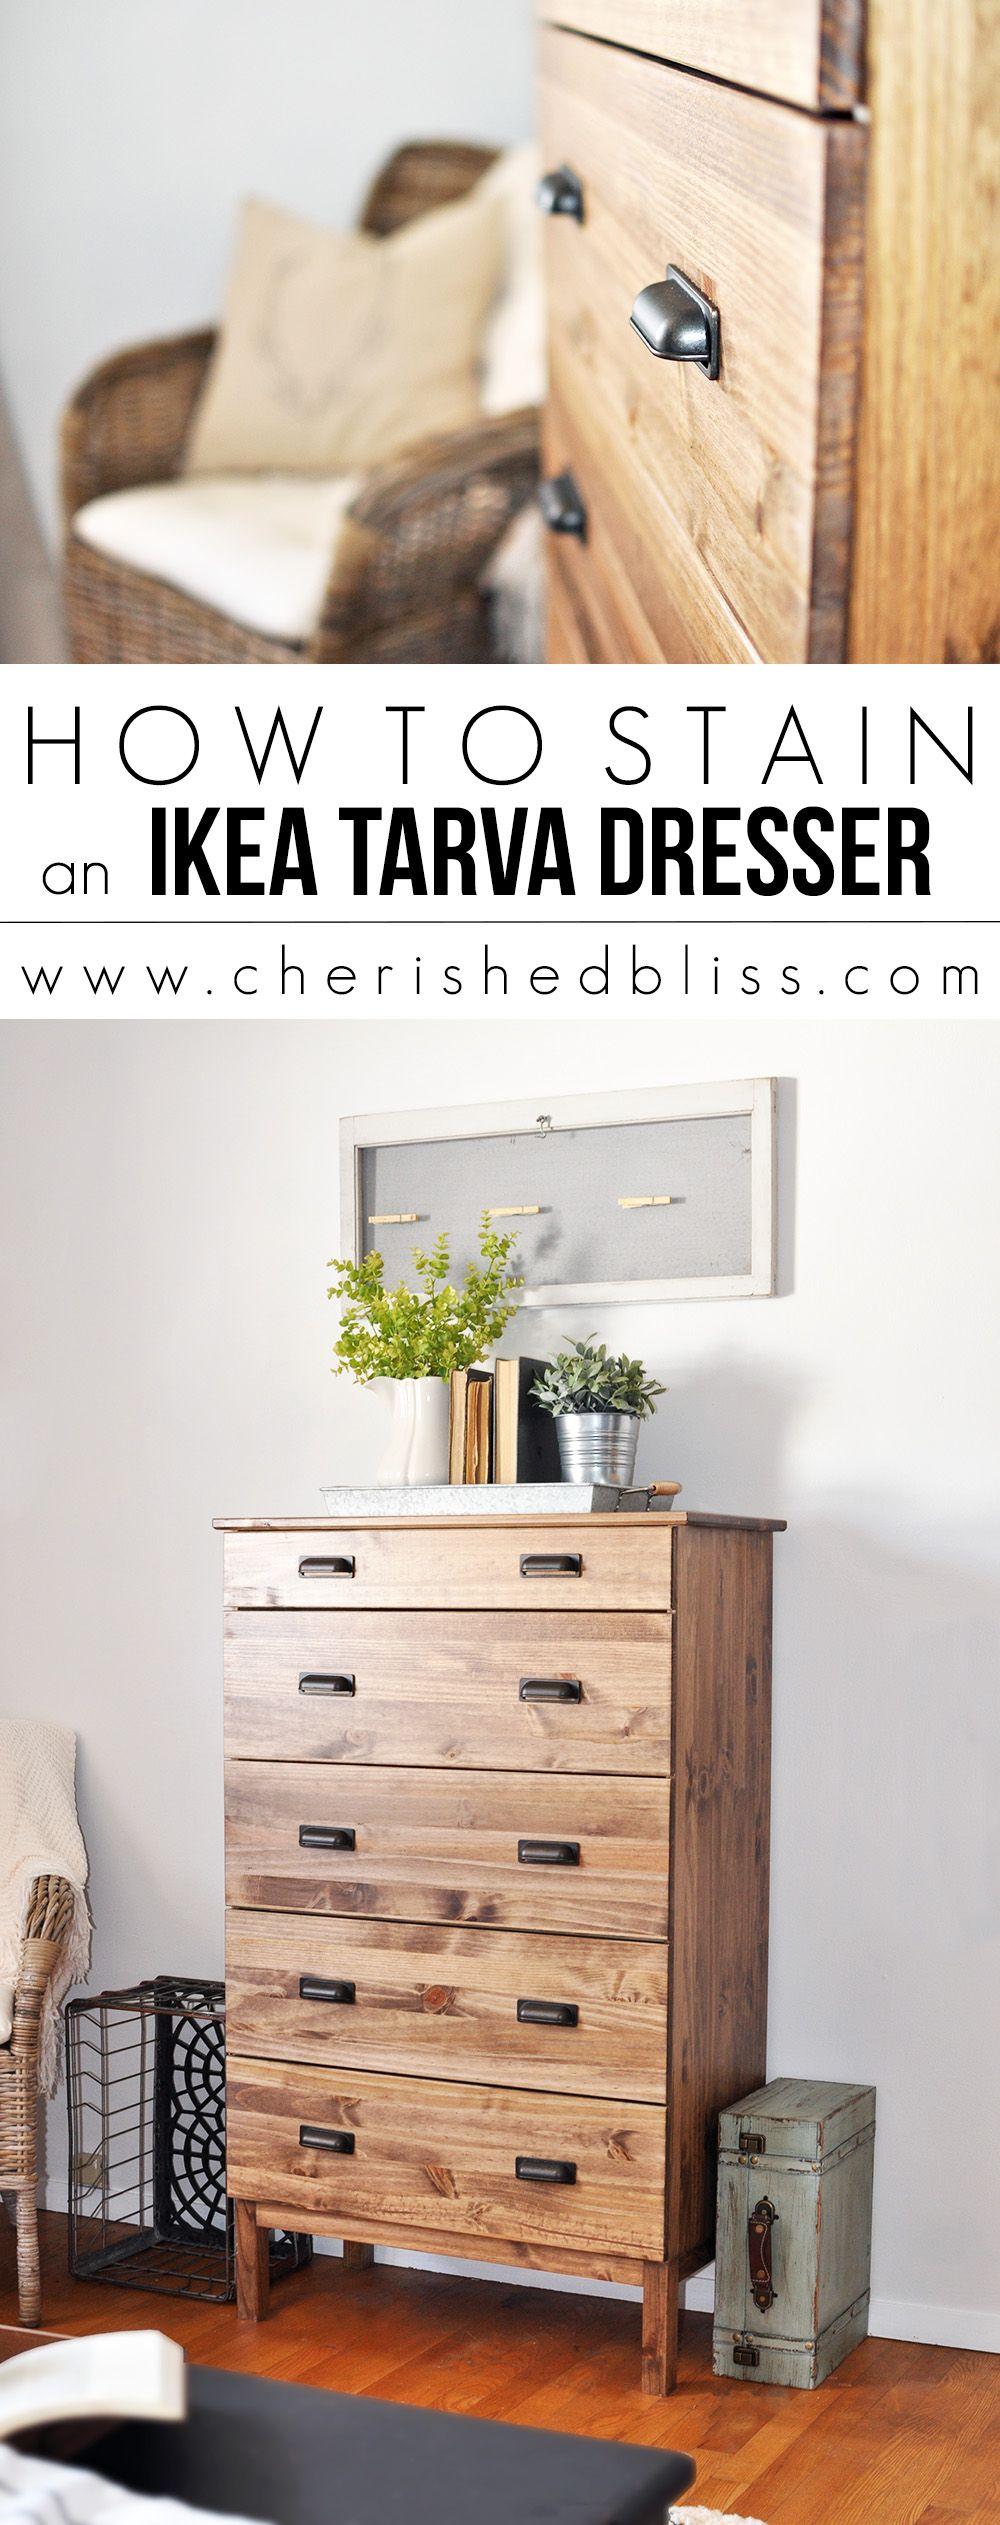 How To Stain An Ikea Tarva Dresser Cherished Bliss Ikea Diy Ikea Tarva Dresser Diy Furniture